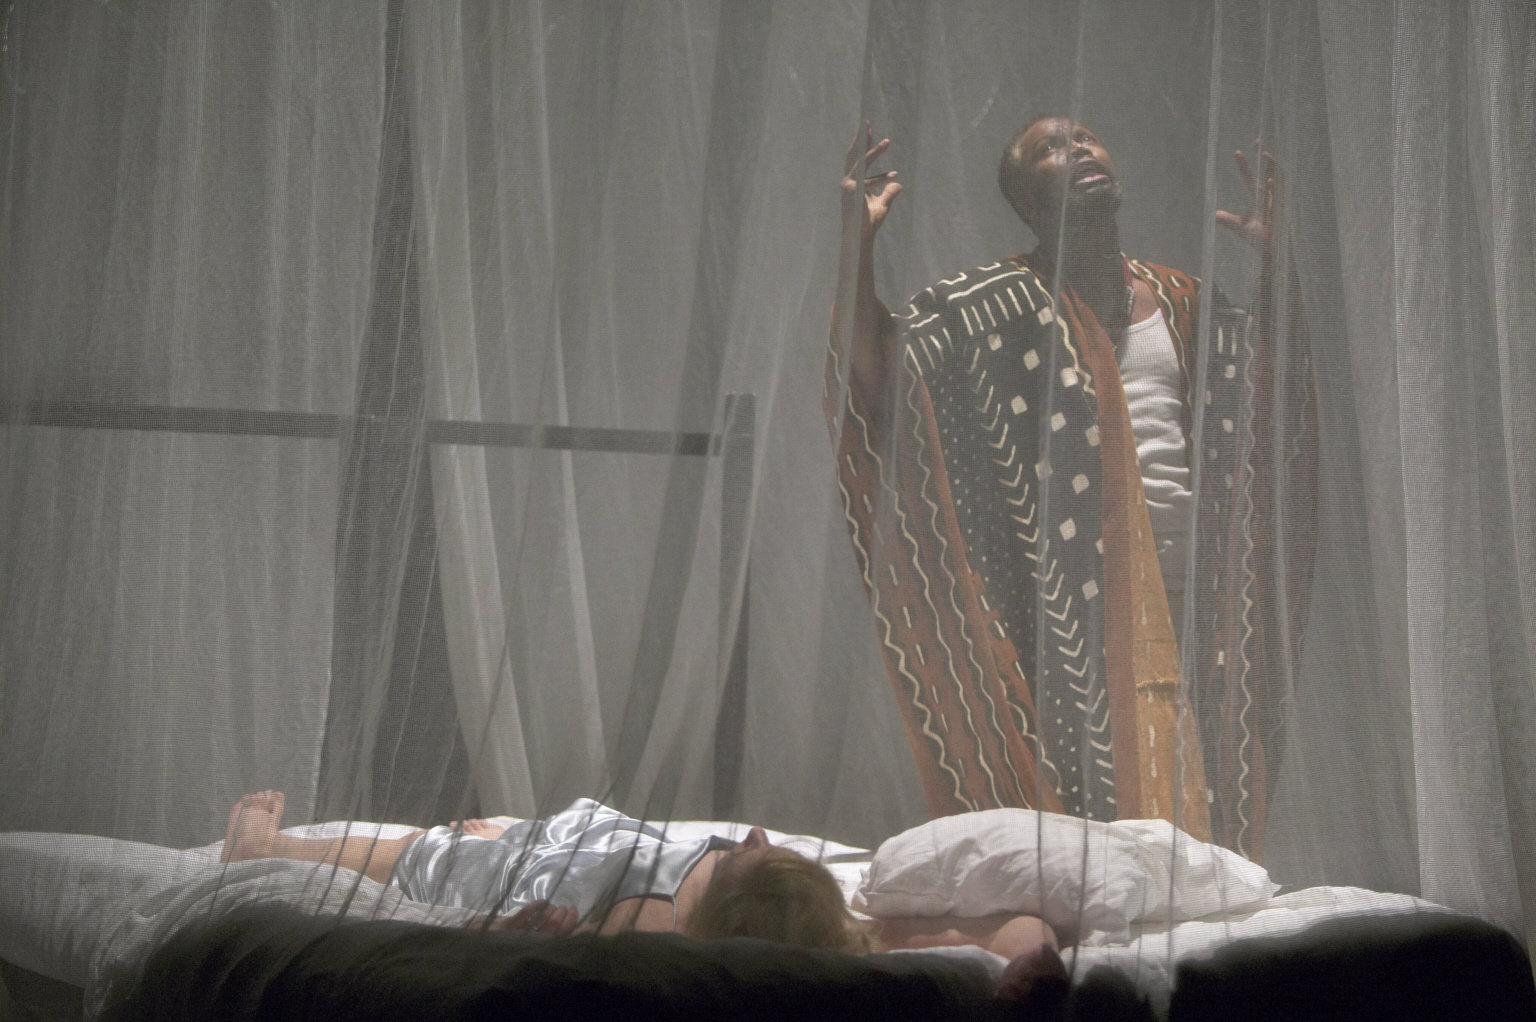 Othello stands over Desdemona's body.